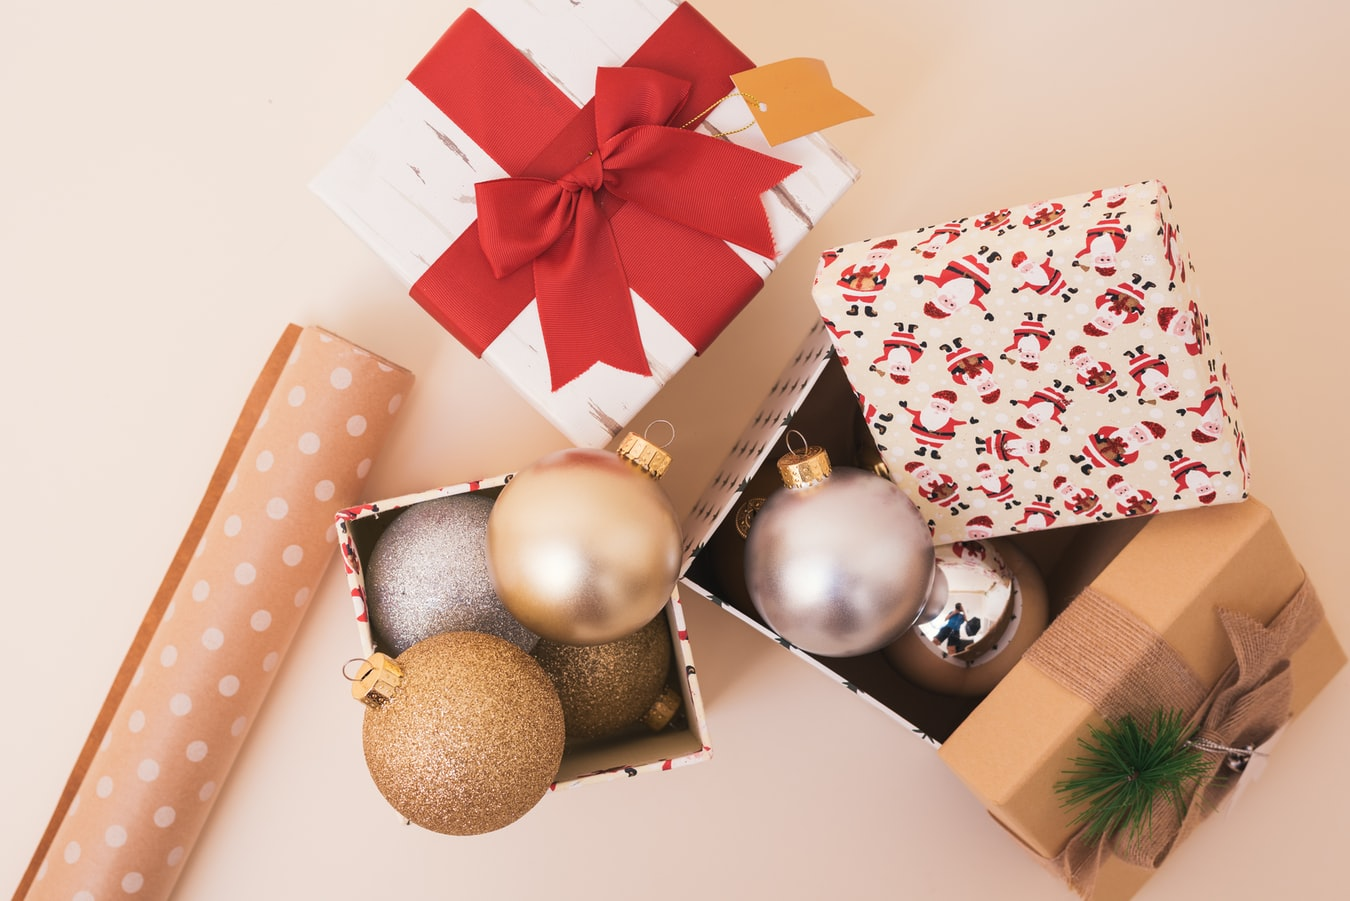 Smart Holiday Shopping: How to Get the Most Out of Your Spending This Holiday Season